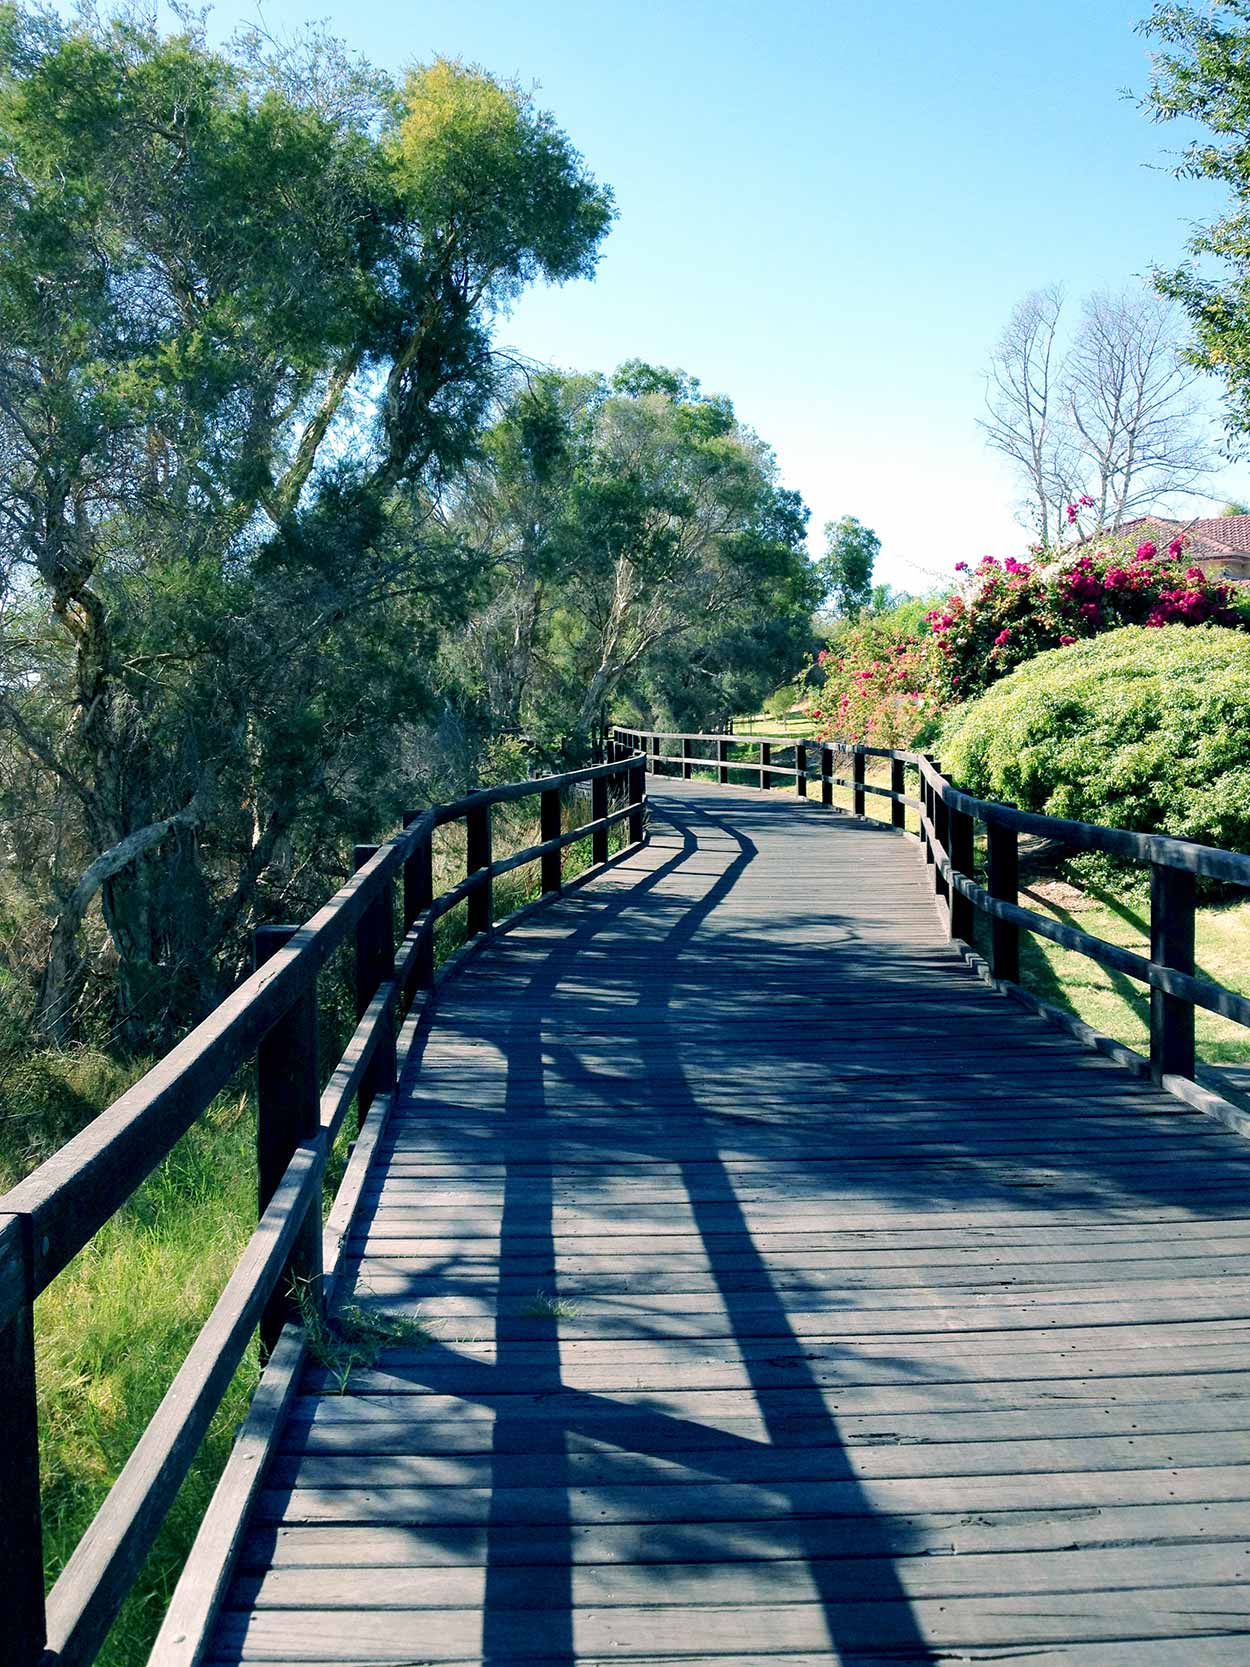 A boardwalk within the Canning River Regional Park near the Riverton Bridge, Canning River, Perth, Western Australia